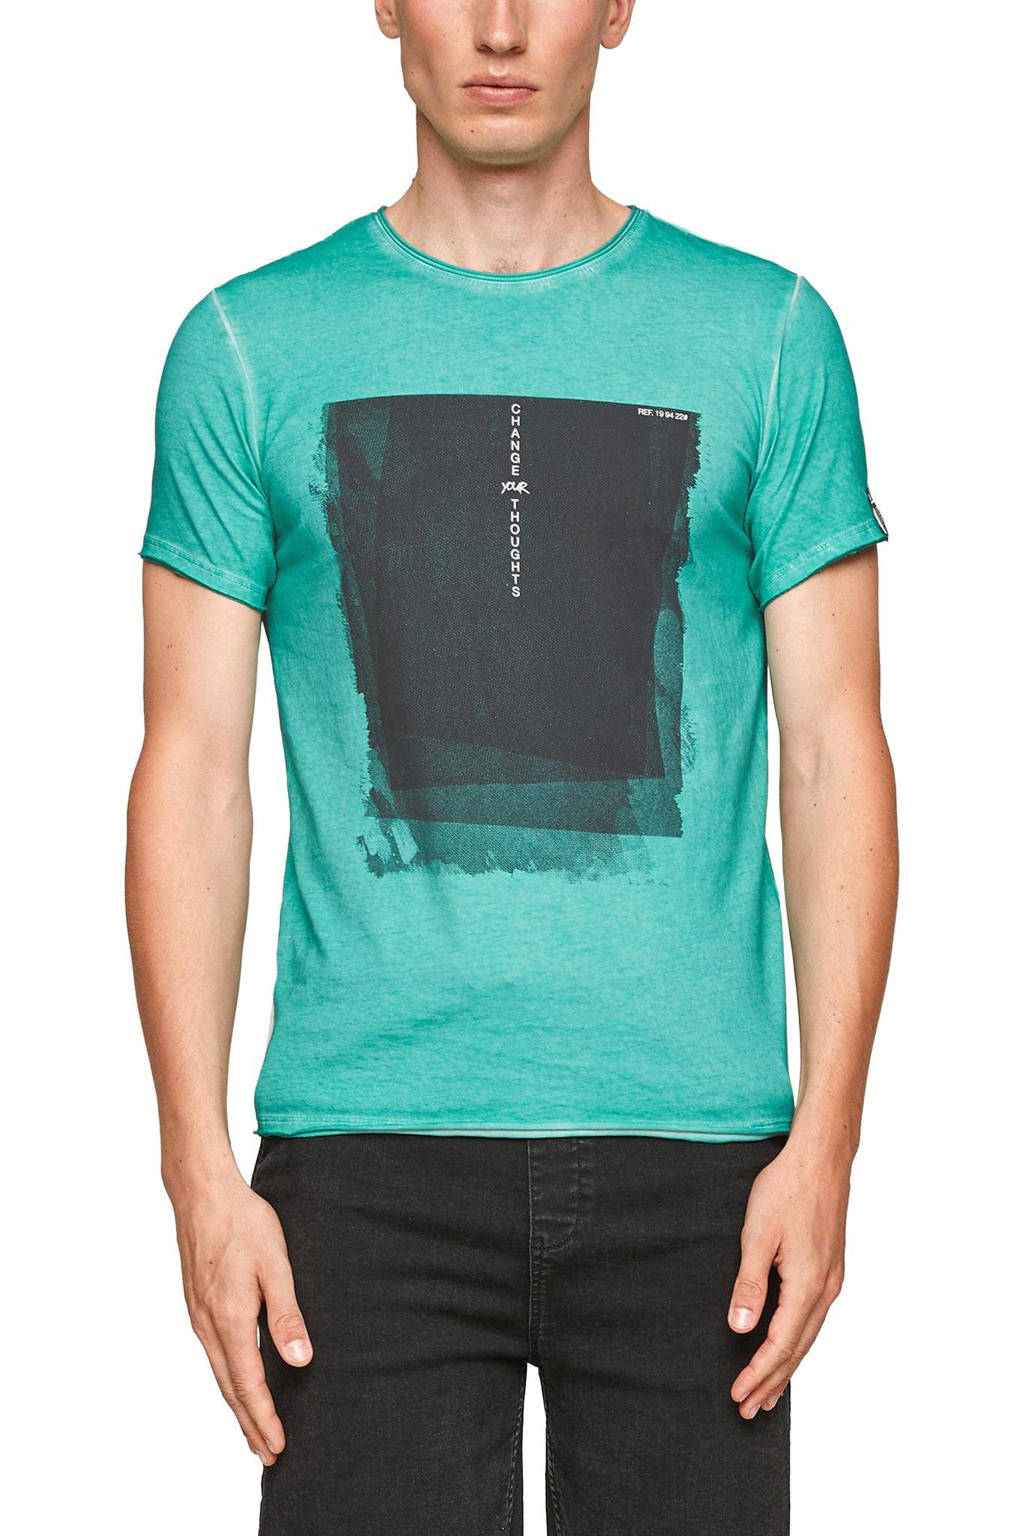 Q/S designed by slim fit T-shirt met printopdruk turquoise, Turquoise